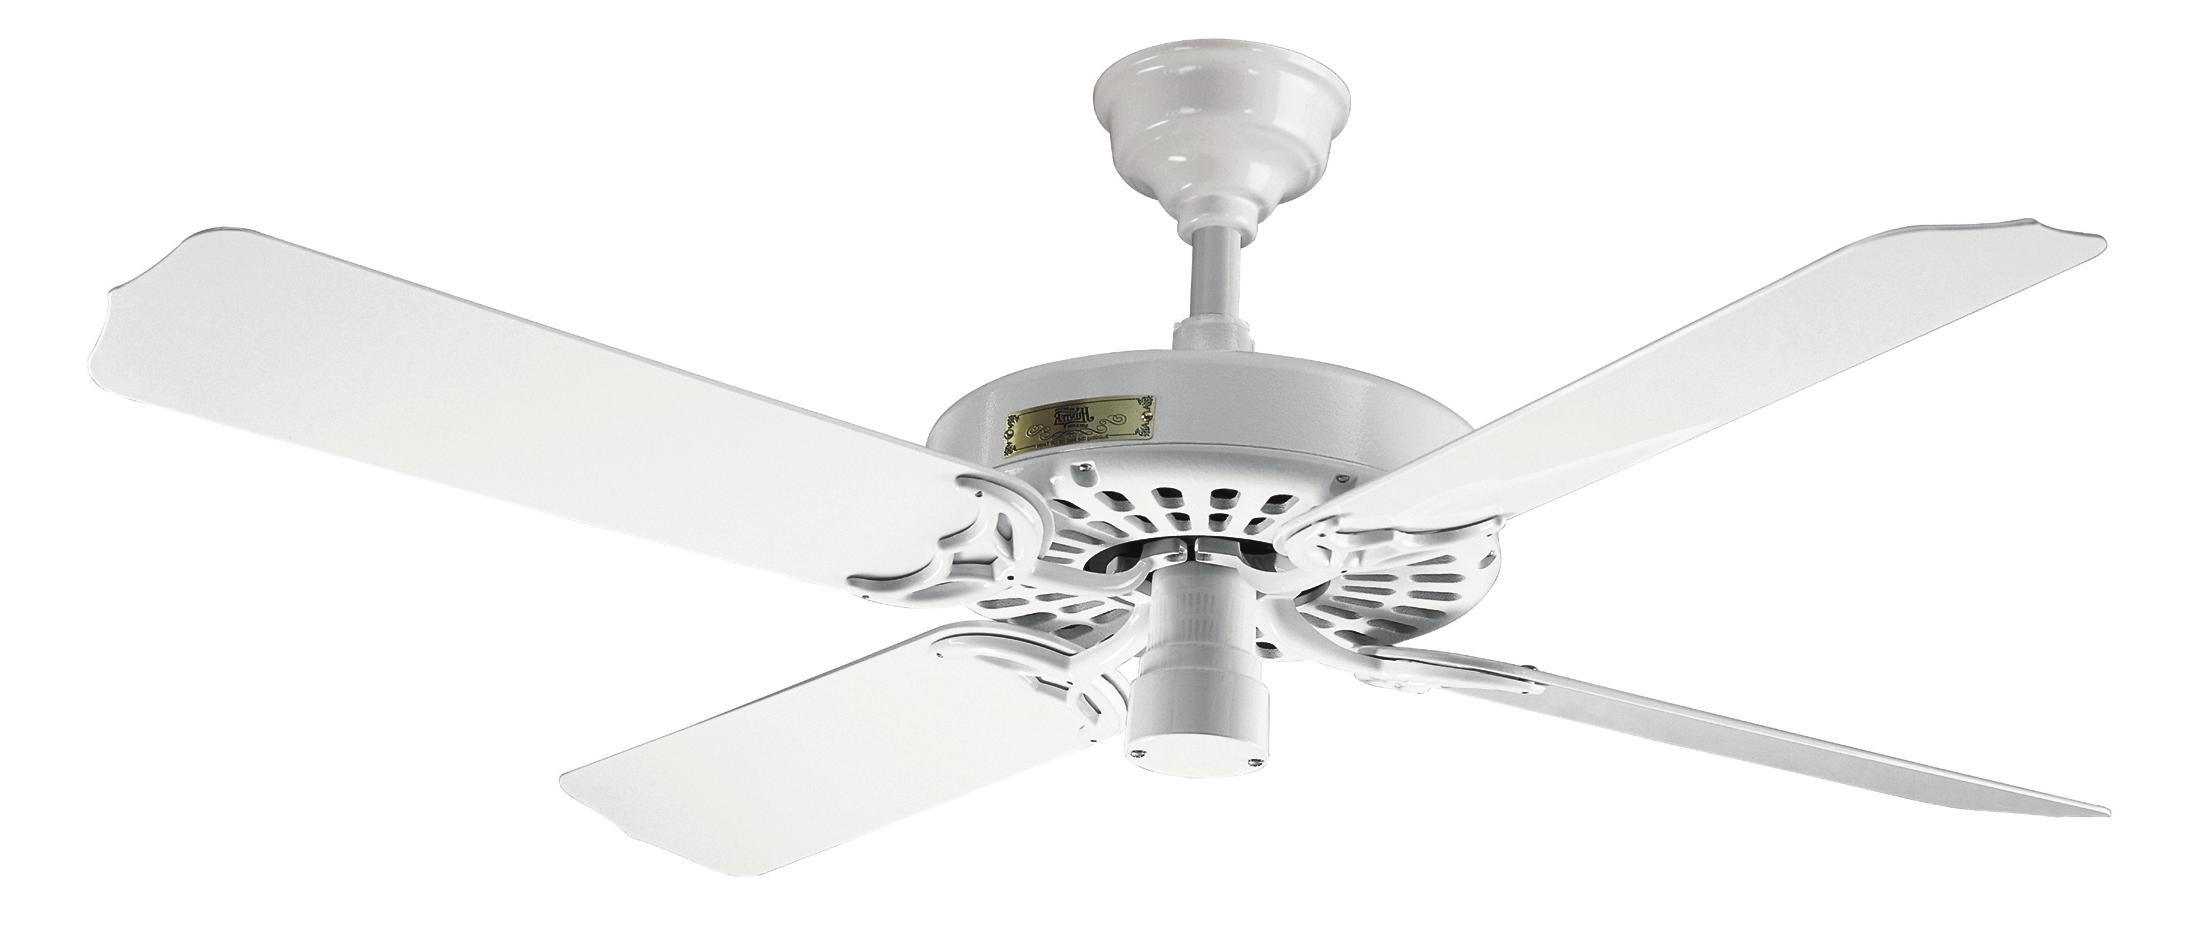 Most Up To Date Hunter Outdoor Original White Ceiling Fan 25602 In White, Best In Hunter Outdoor Ceiling Fans With White Lights (View 16 of 20)